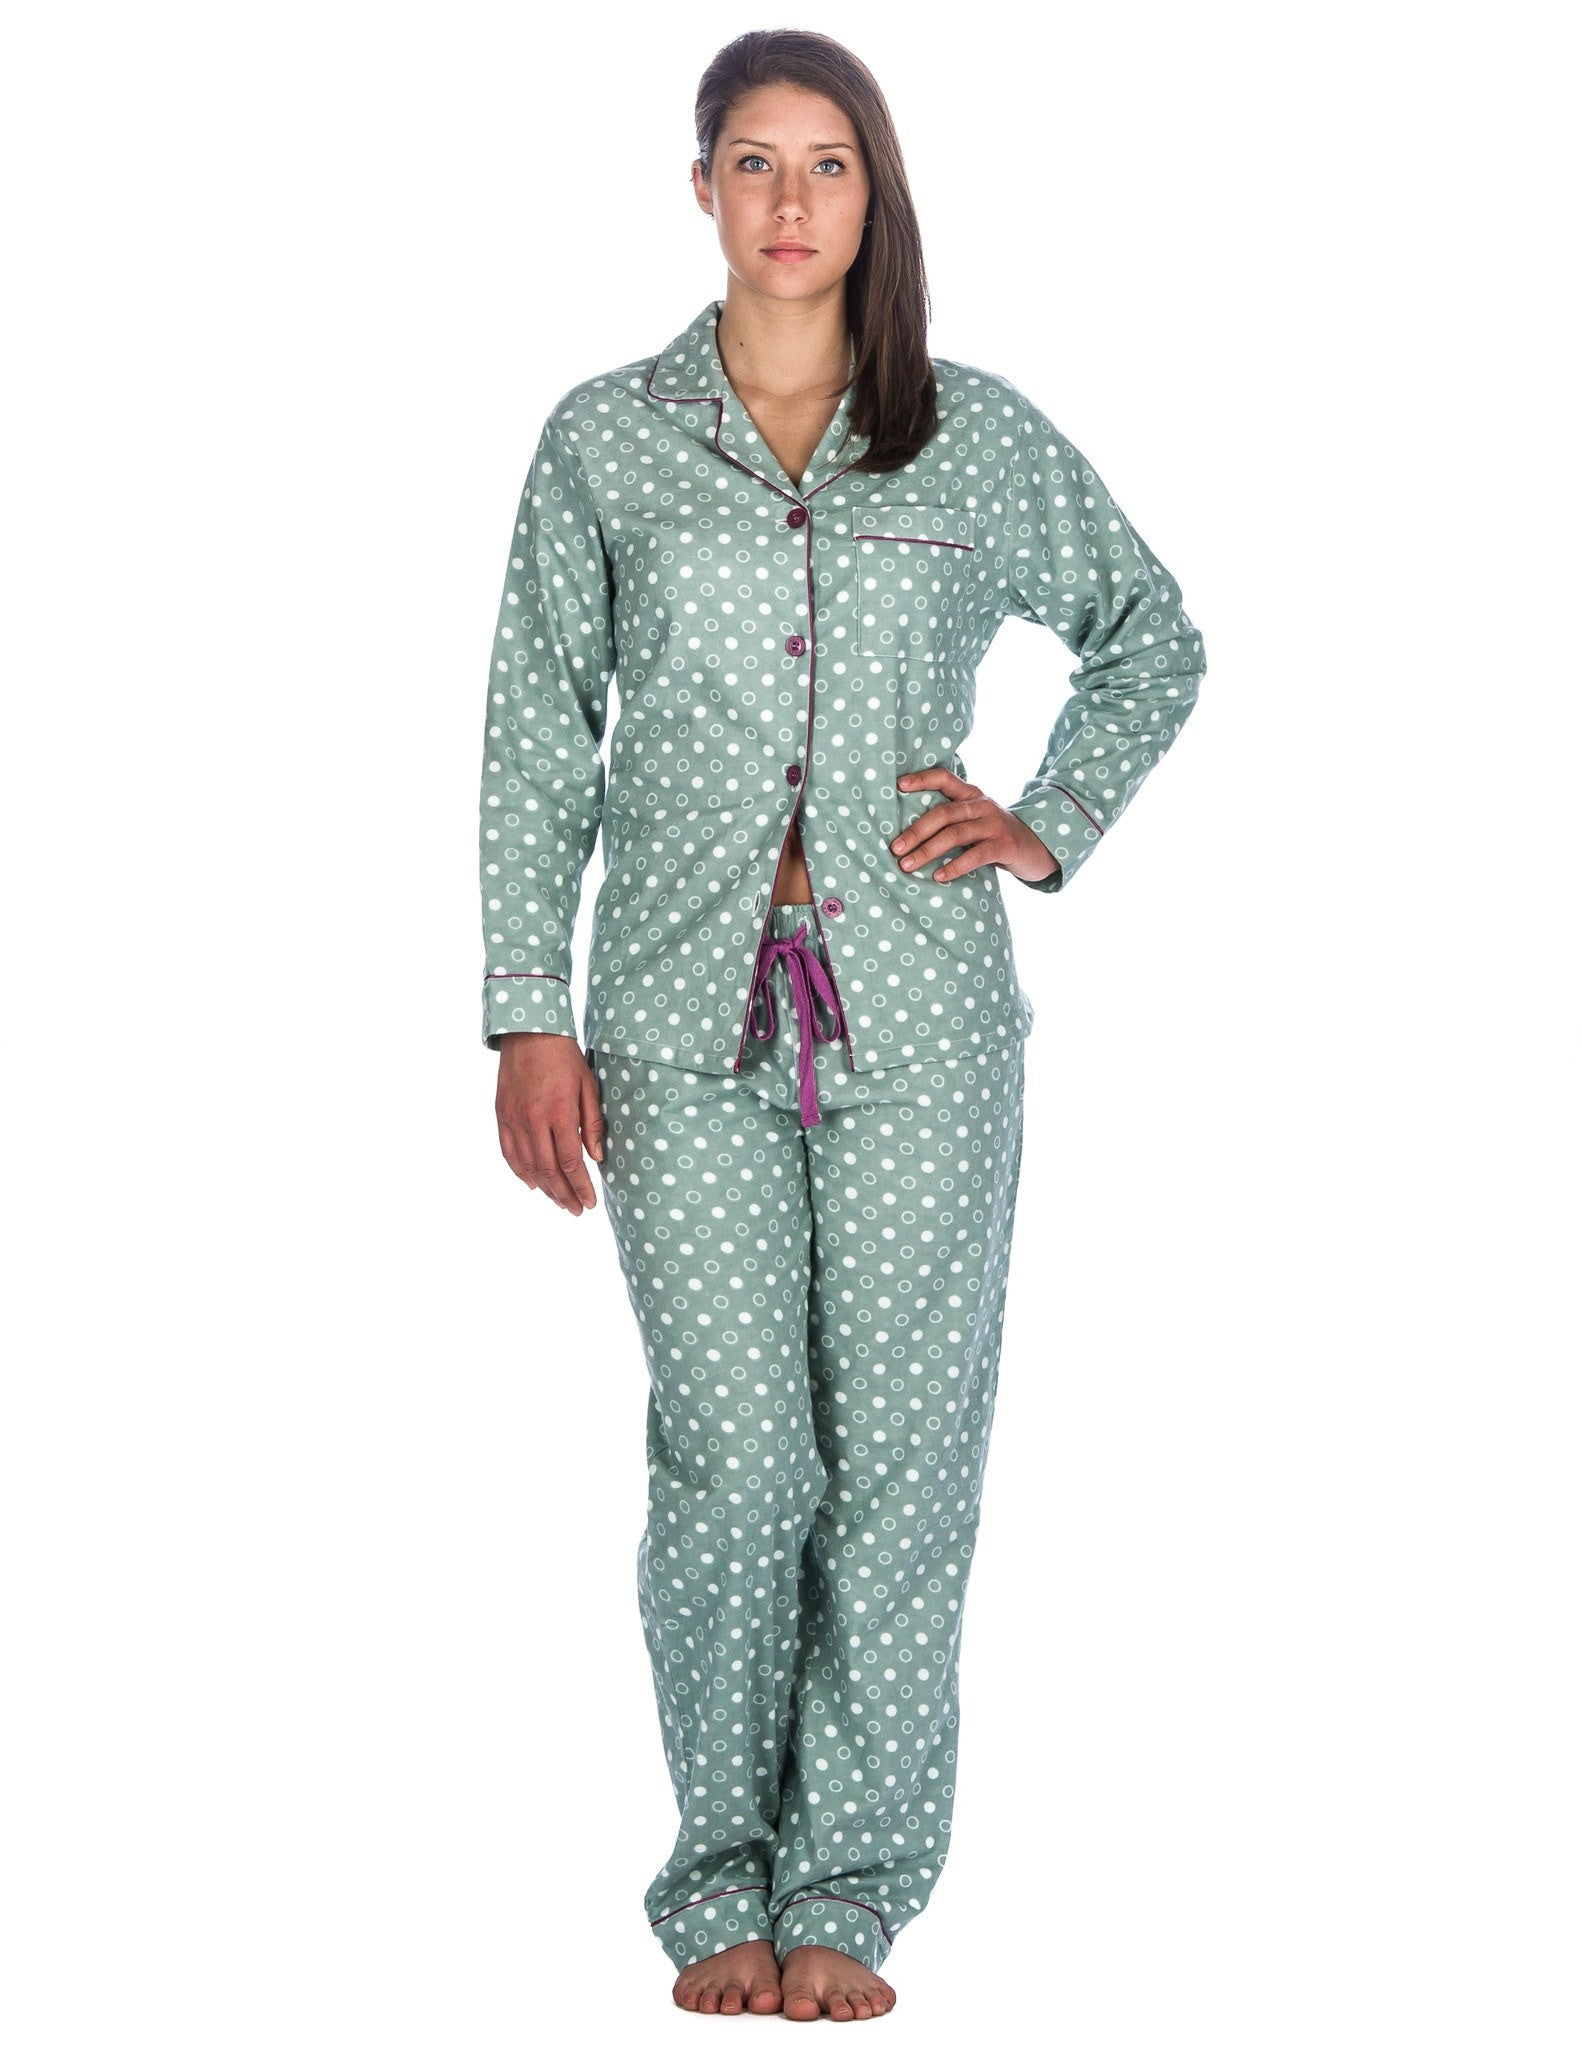 Find Cotton Pajamas like Men's Cotton Pajamas, Women's Cotton Pajamas, Kids Cotton Pajamas and more at Macy's. Macy's Presents: The Edit- A curated mix of fashion and inspiration Check It Out. Free Shipping with $75 purchase + Free Store Pickup. Contiguous US. Charter Club Mix It Plus Size Cotton Pajama Set.